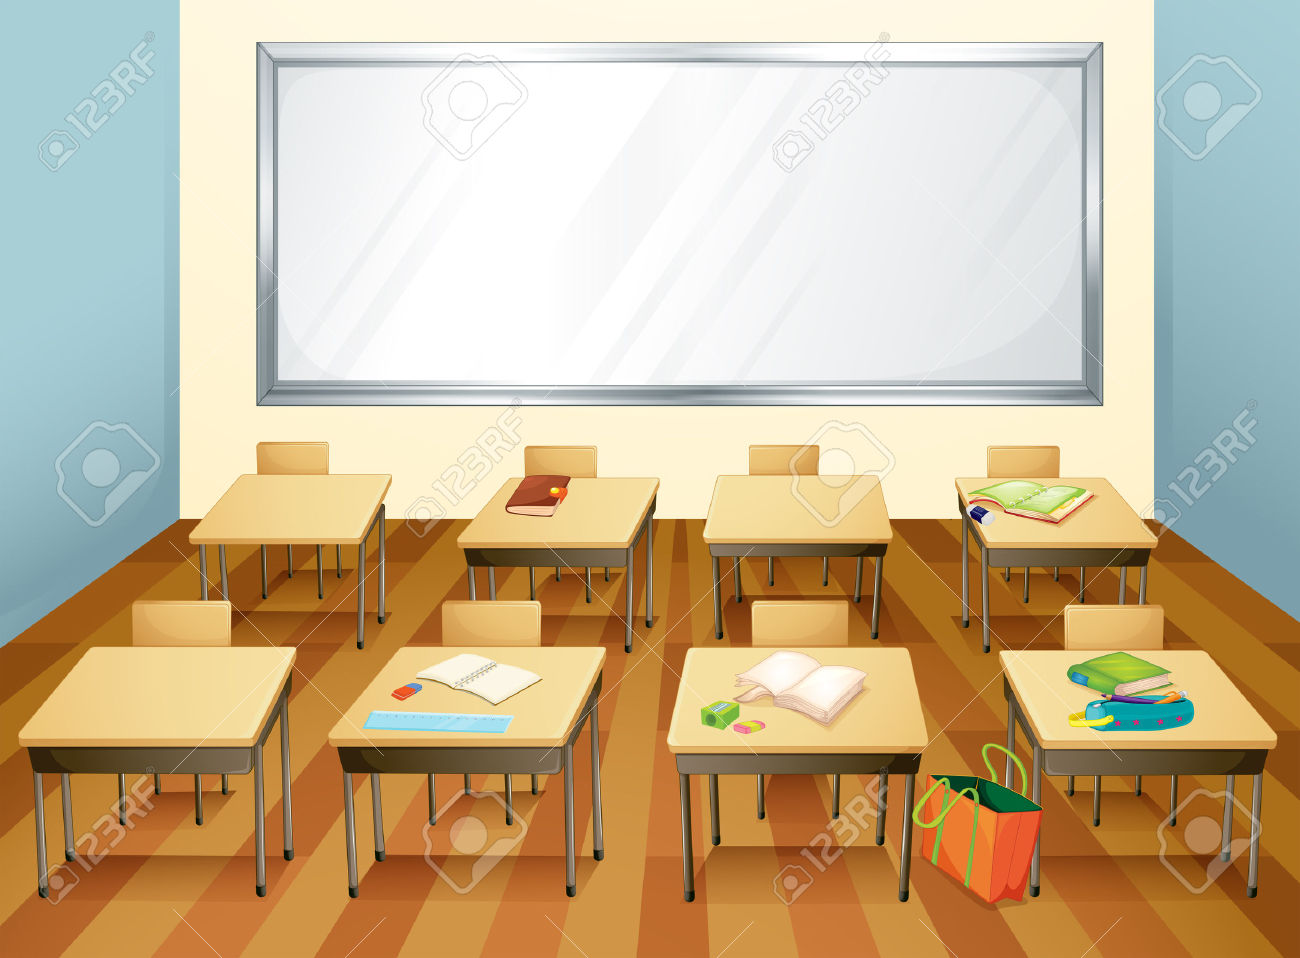 Empty Classroom With Stationary On The Desks Royalty Free Cliparts.